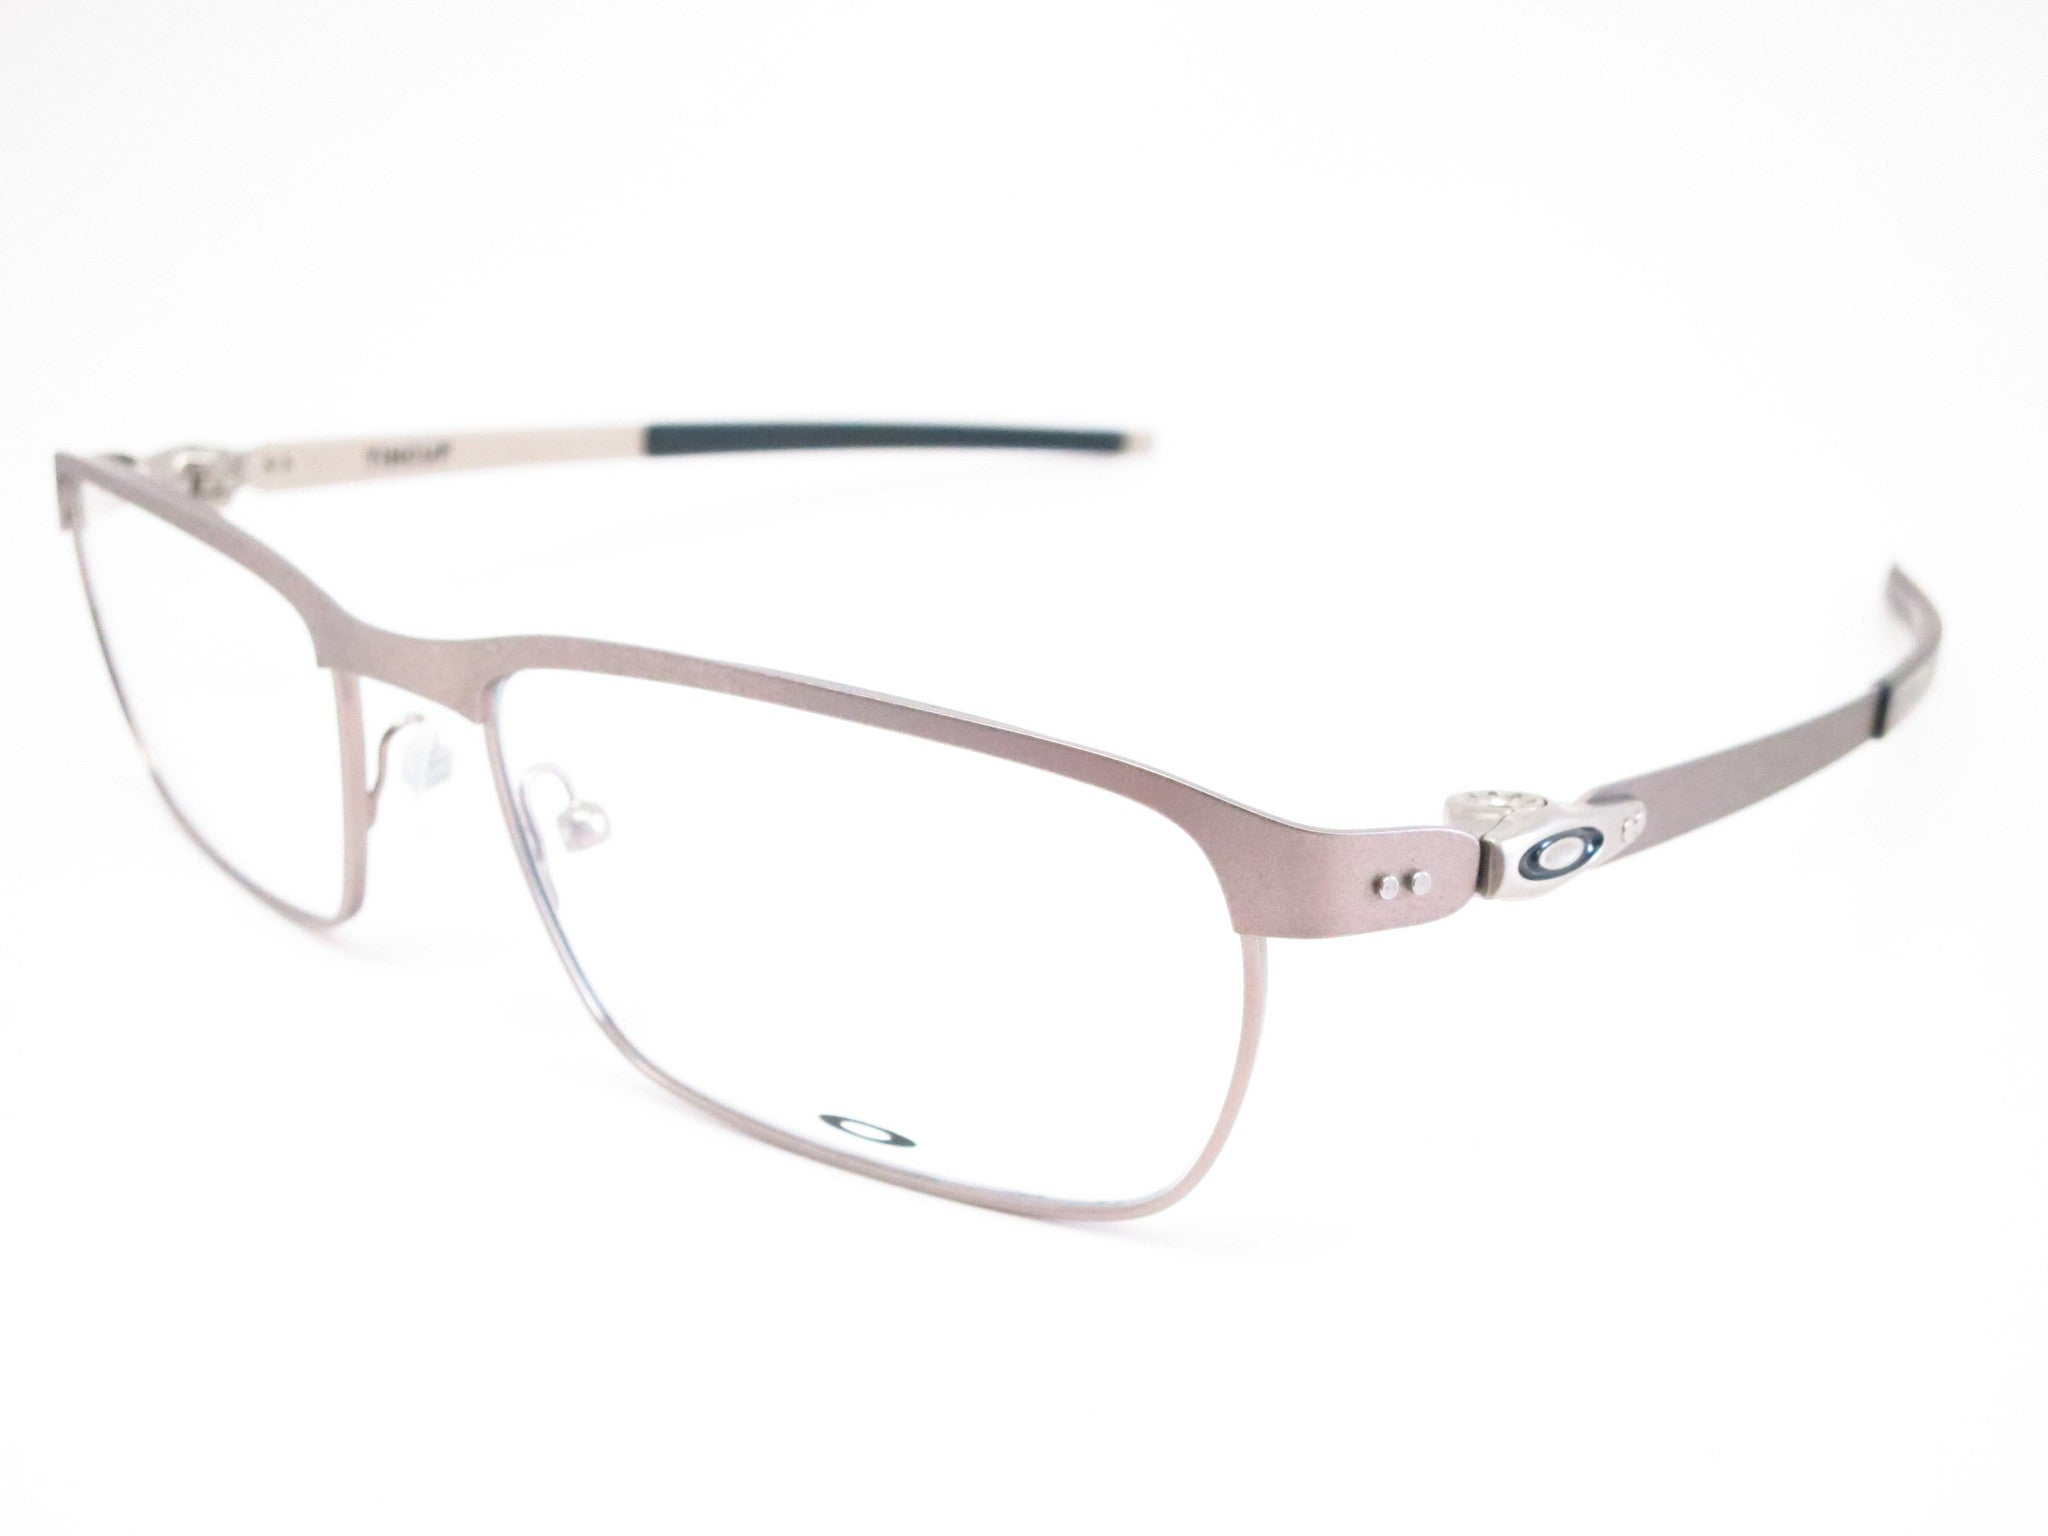 06221b1769 Oakley Tincup OX3184-04 Powder Steel Eyeglasses - Eye Heart Shades - Oakley  - Eyeglasses ...